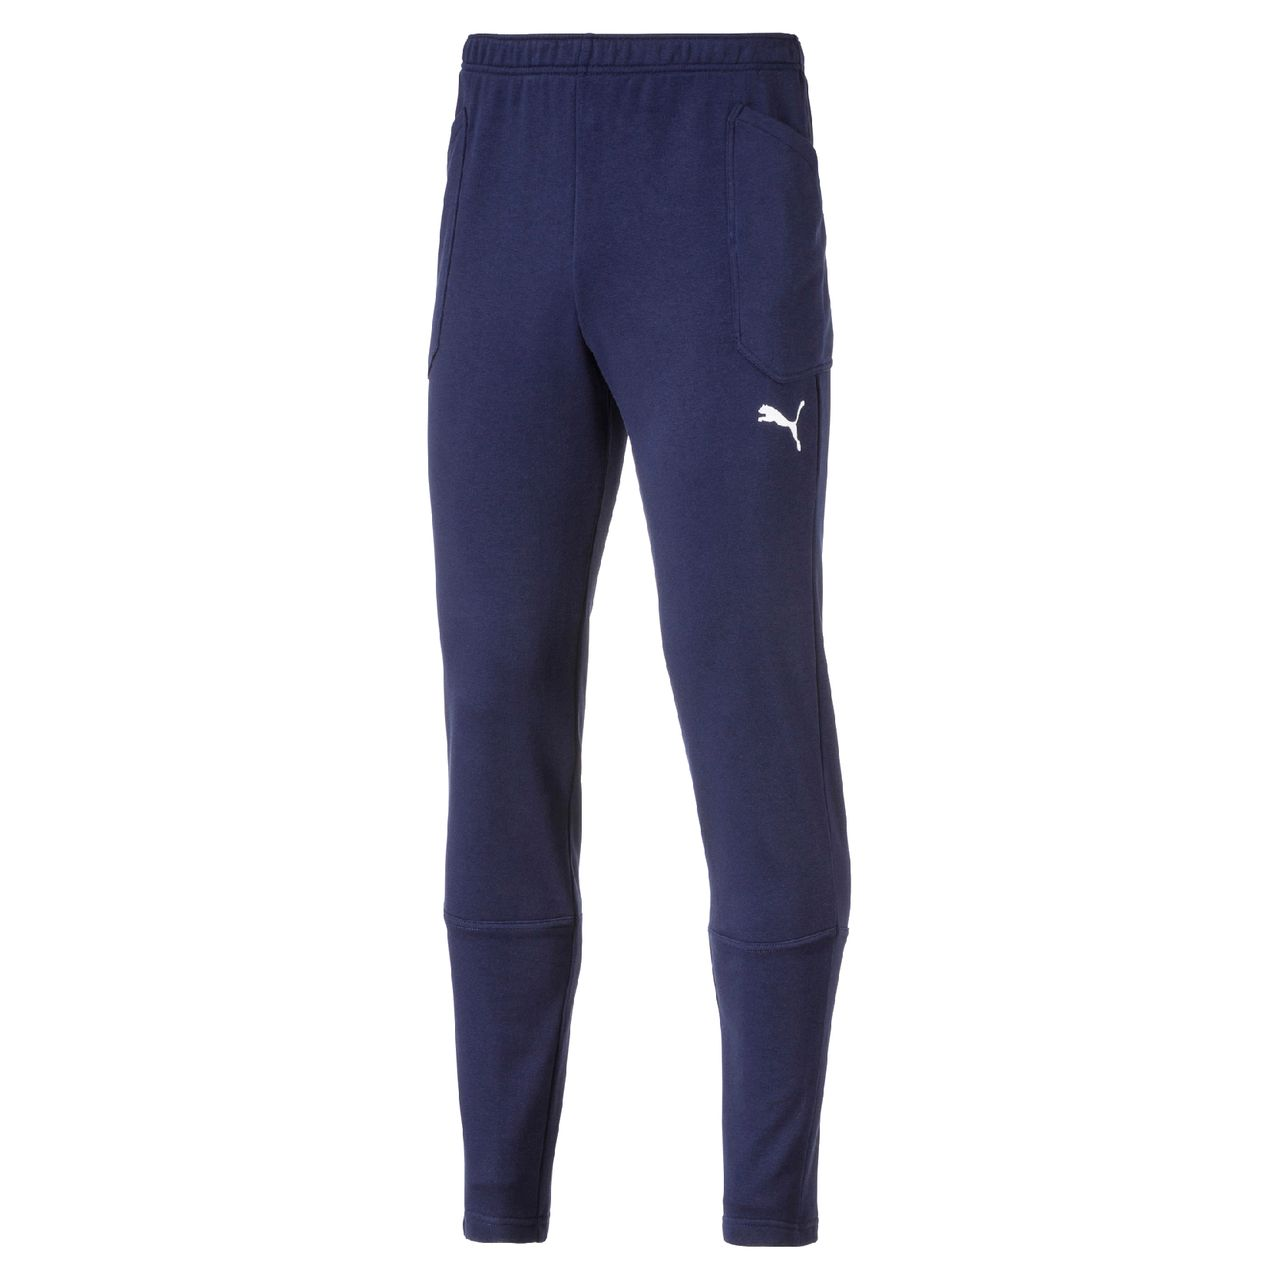 PUMA LIGA Casuals Pants